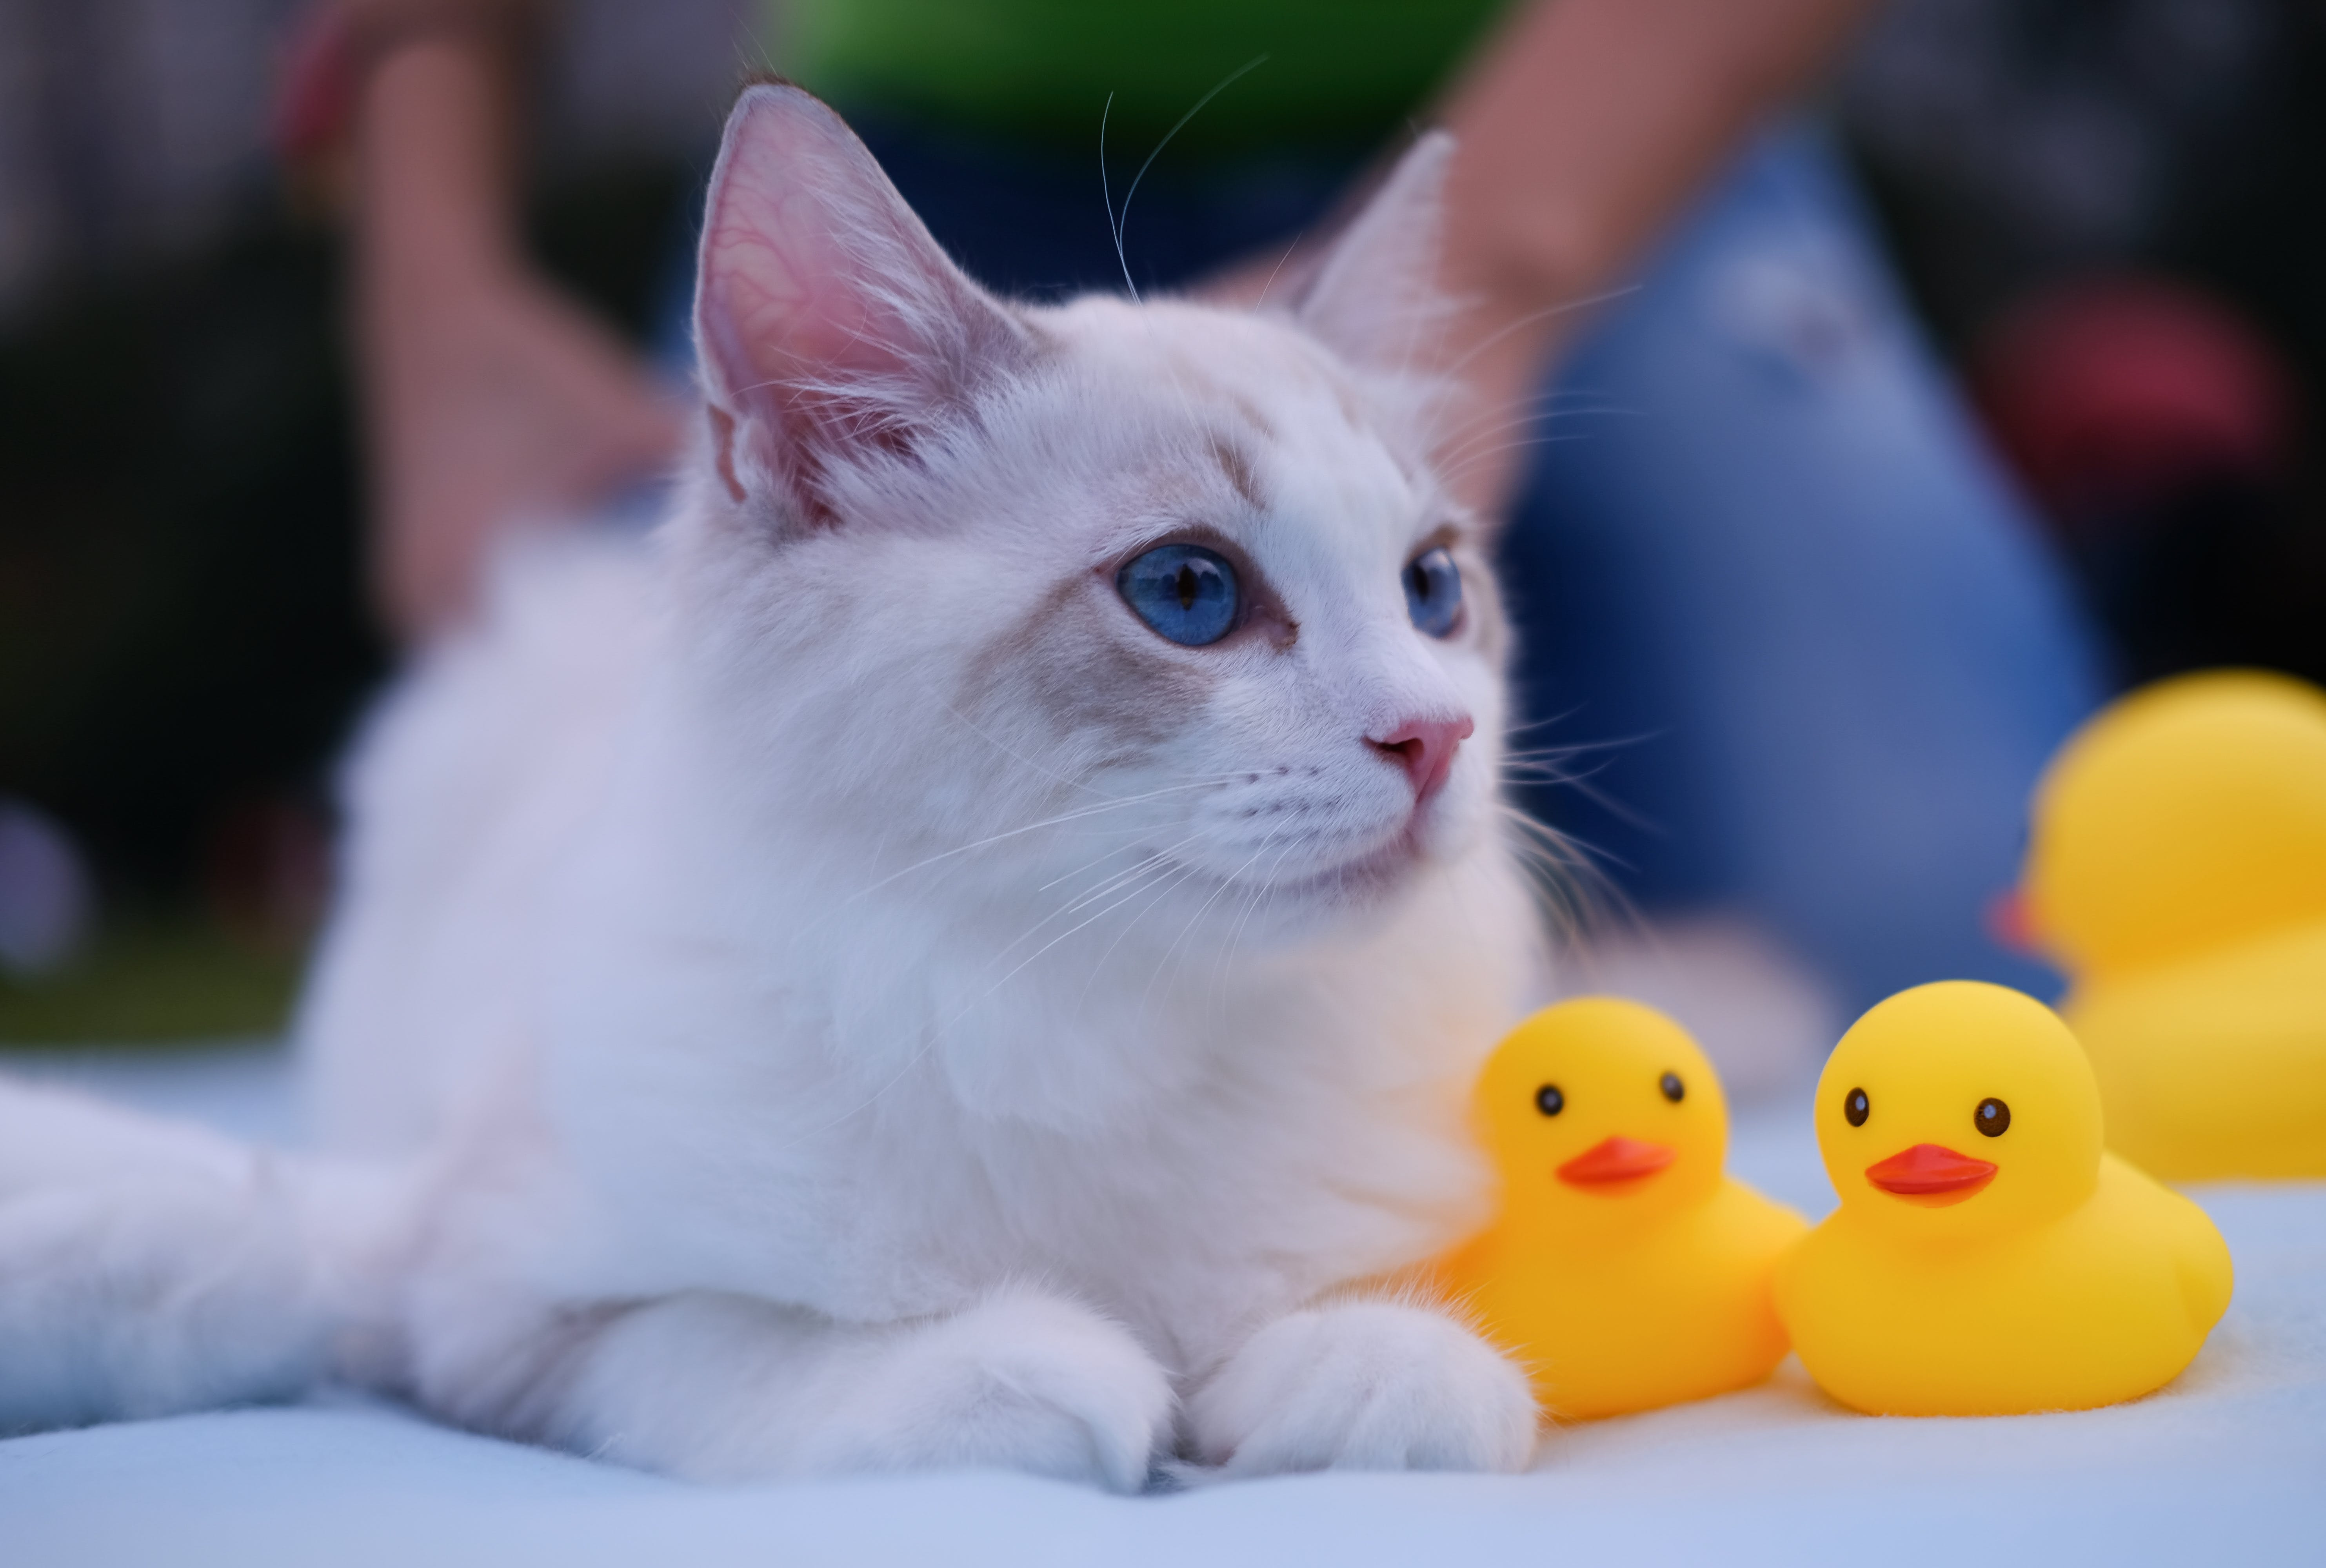 Close-Up Photo of Cat Near Yellow Rubber Ducklings